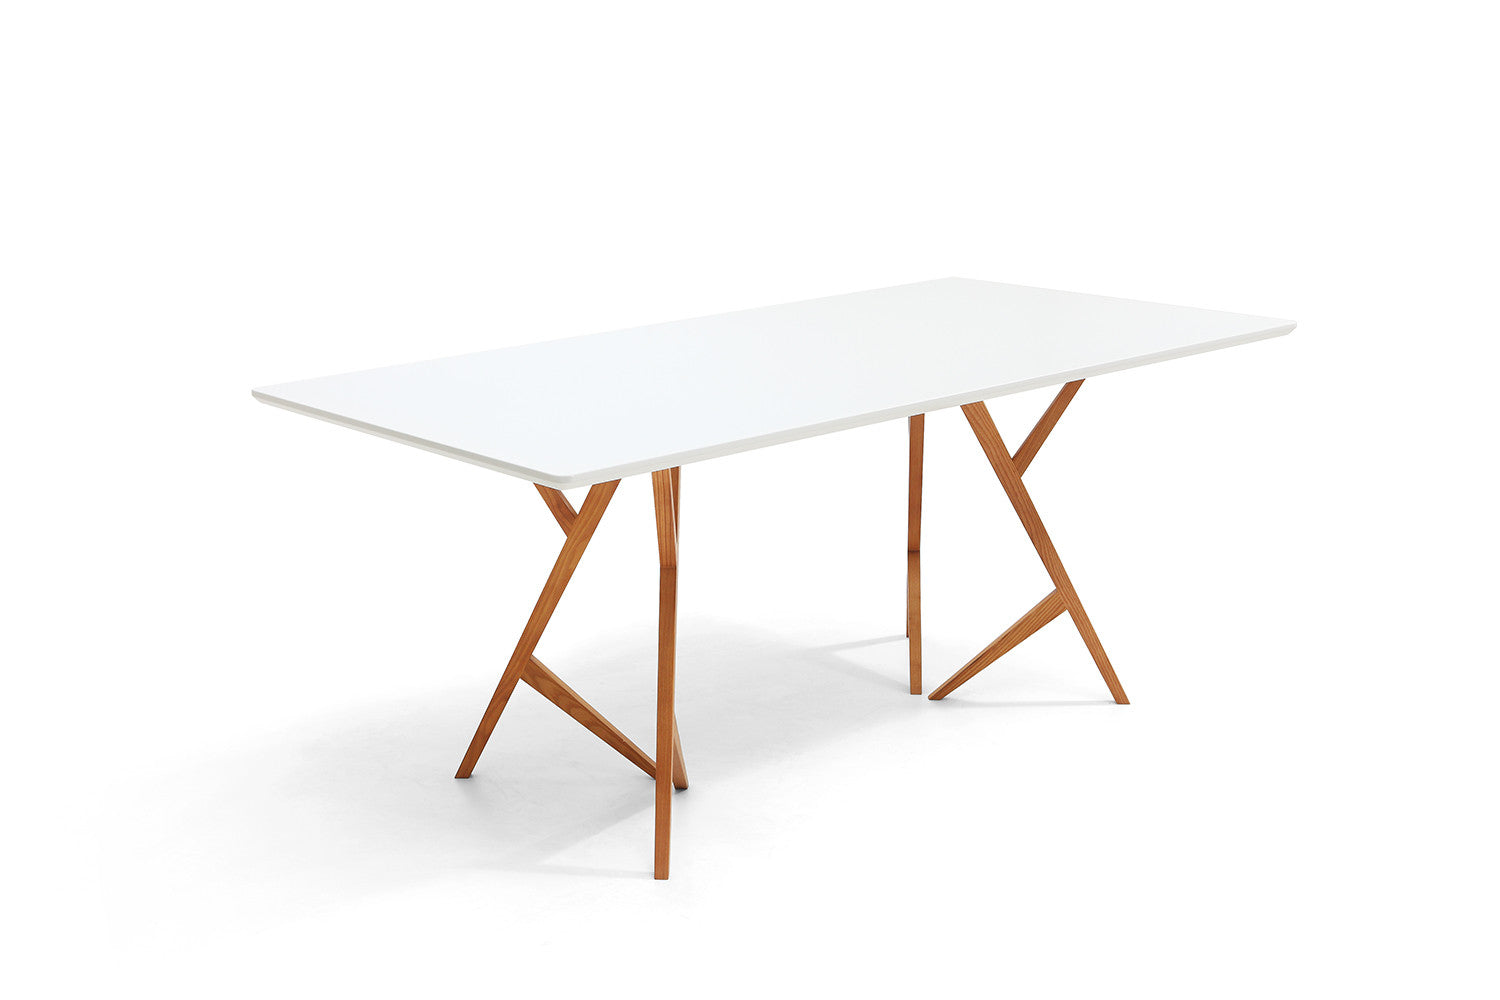 Table de salle manger design scandinave vispa dewarens for Table blanche